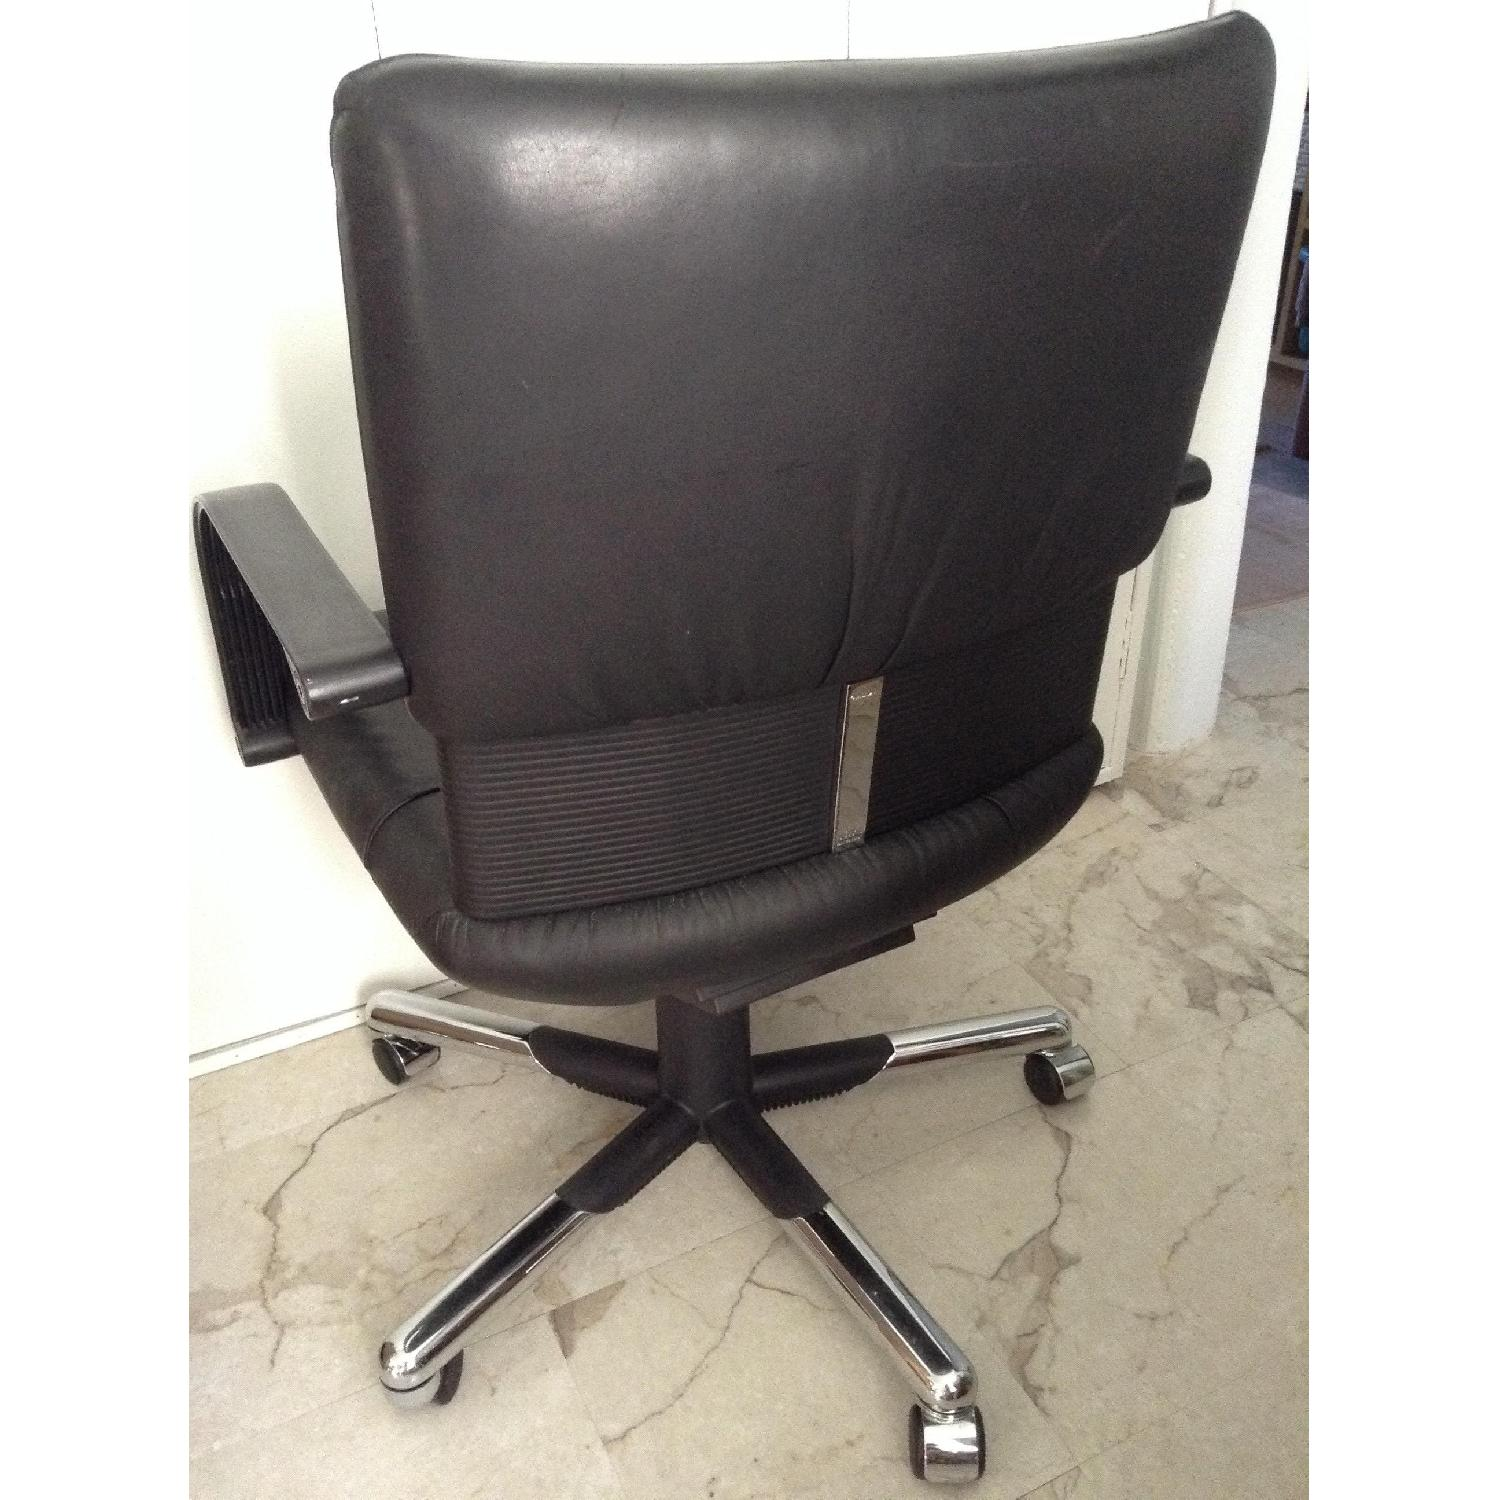 Vitra Black Leather Swivel Chair By Mario Bellini - image-11